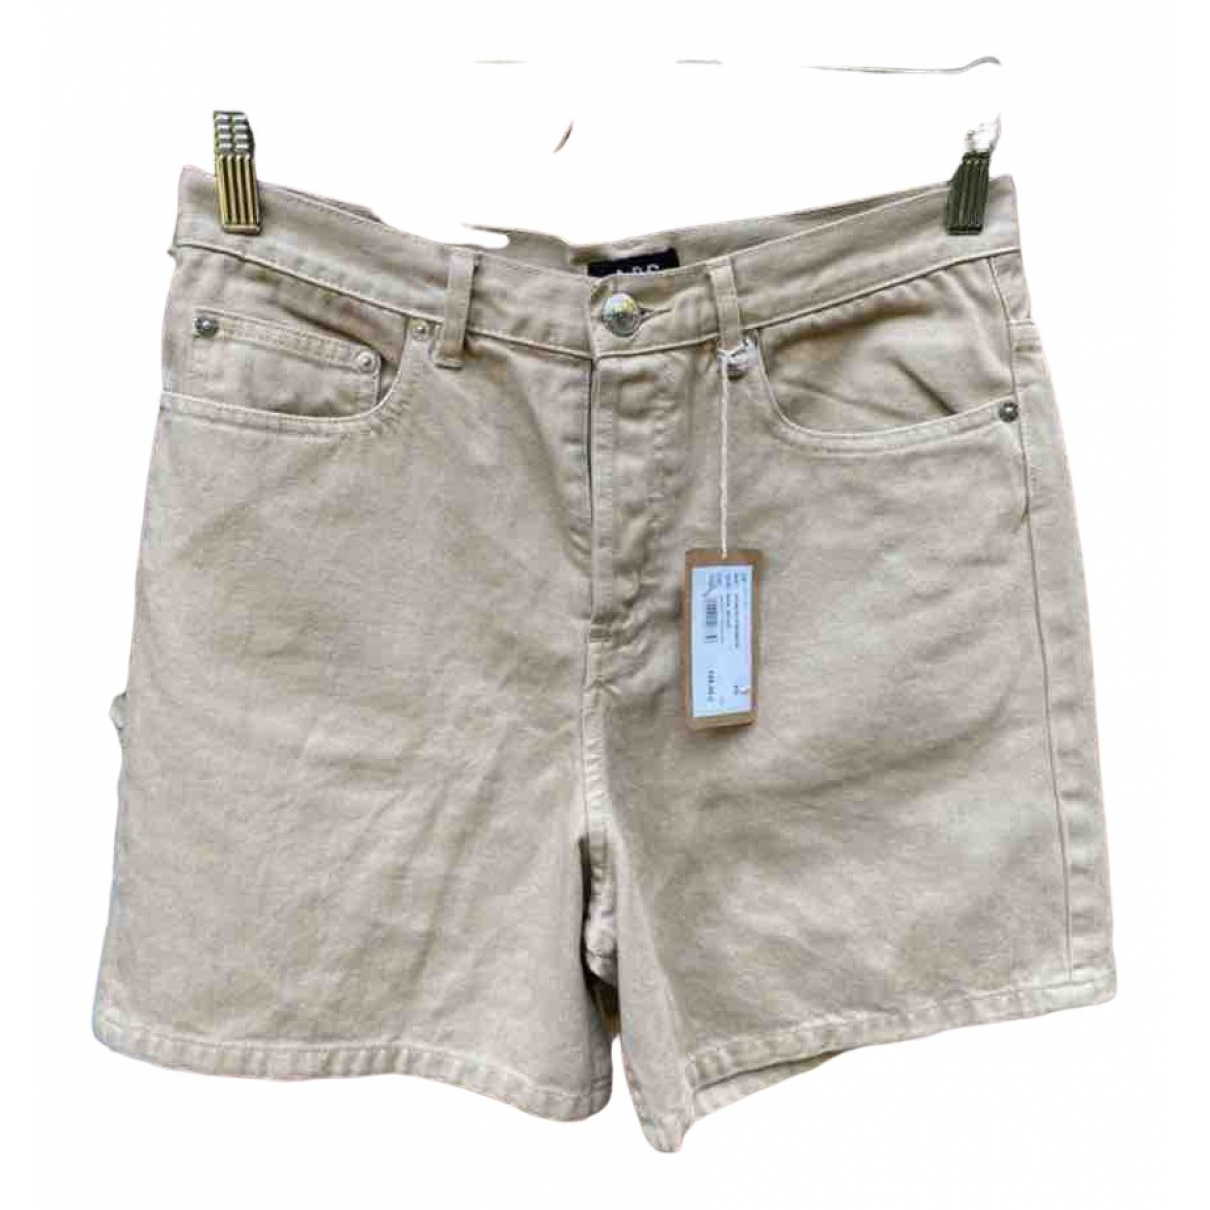 Apc N Beige Cotton Shorts for Women XS International